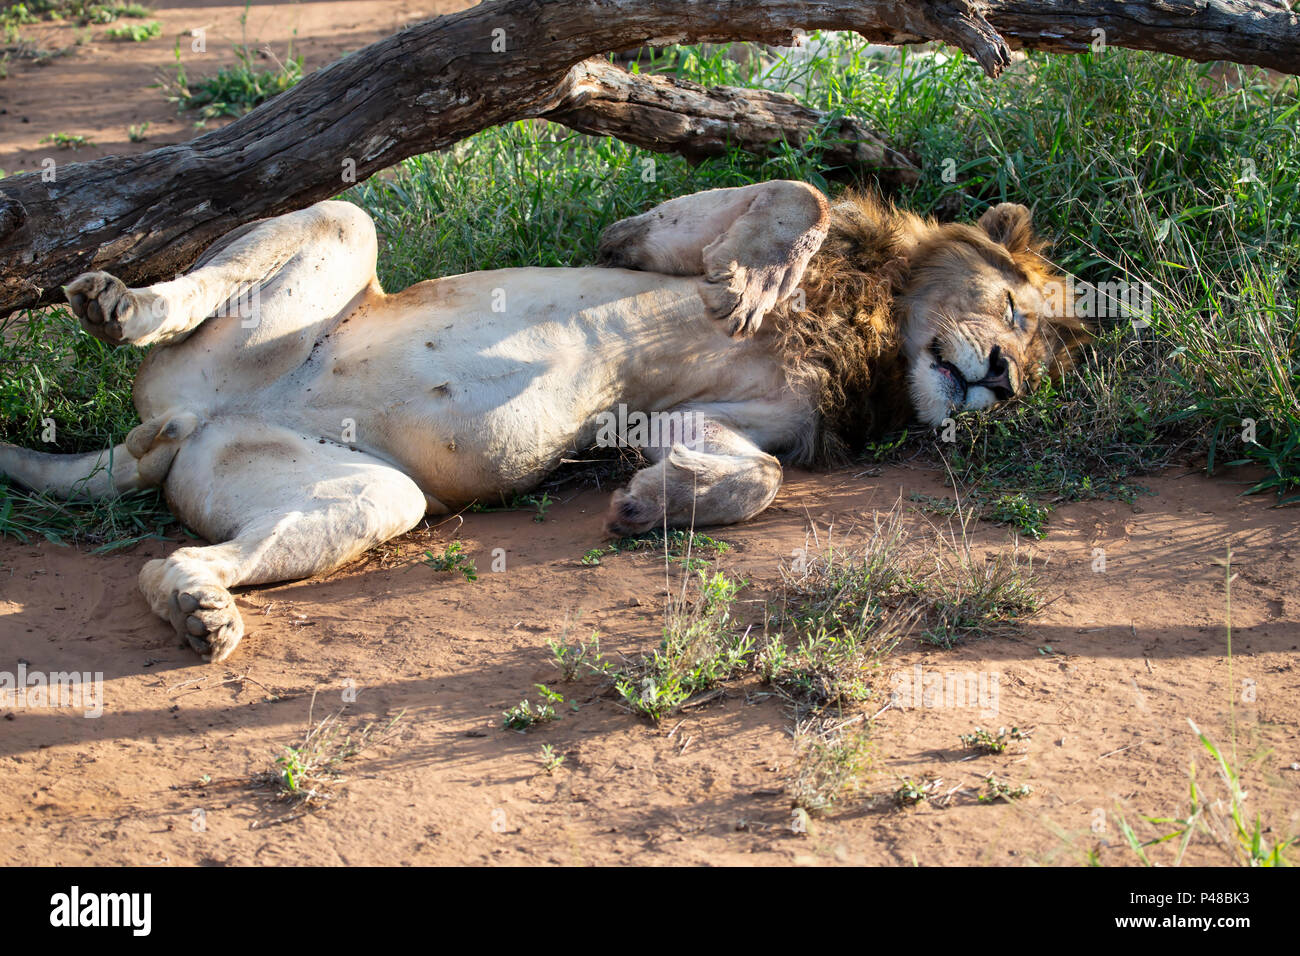 Male Lion Panthera leo lying sleeping in an ungainly position Stock Photo